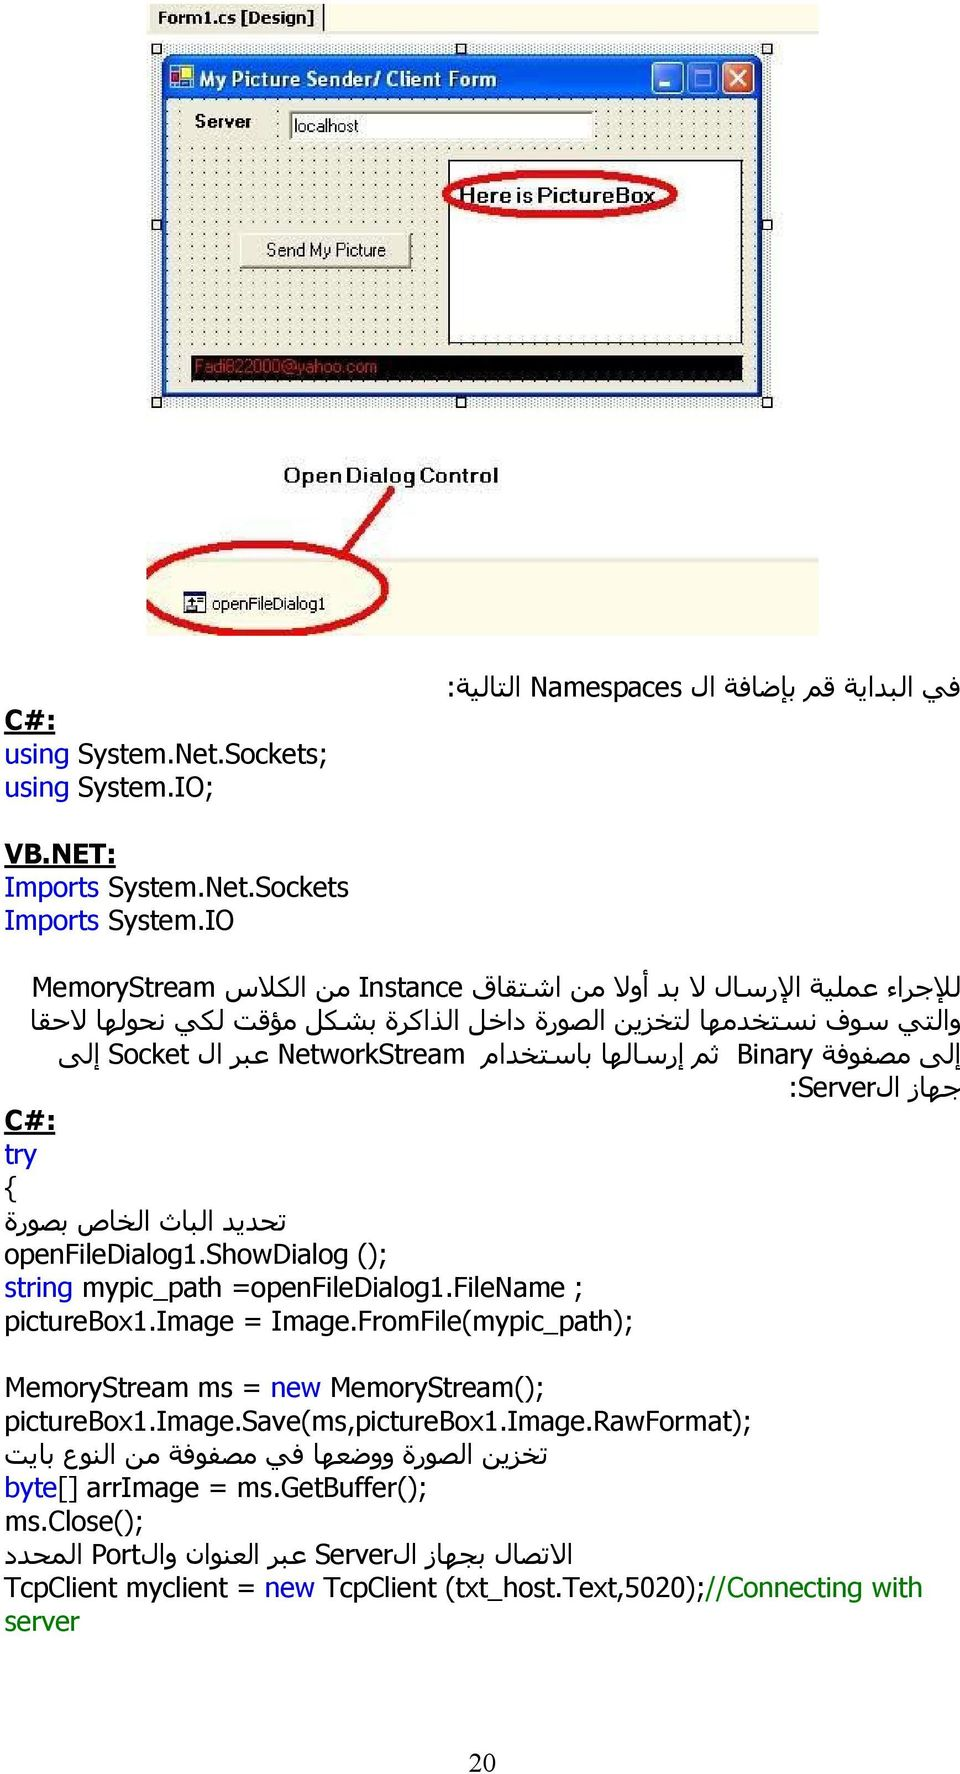 NetworkStream عبر ال Socket إلى جهاز الServer : try تحديد الباث الخاص بصورة openfiledialog1.showdialog (); string mypic_path =openfiledialog1.filename ; picturebox1.image = Image.